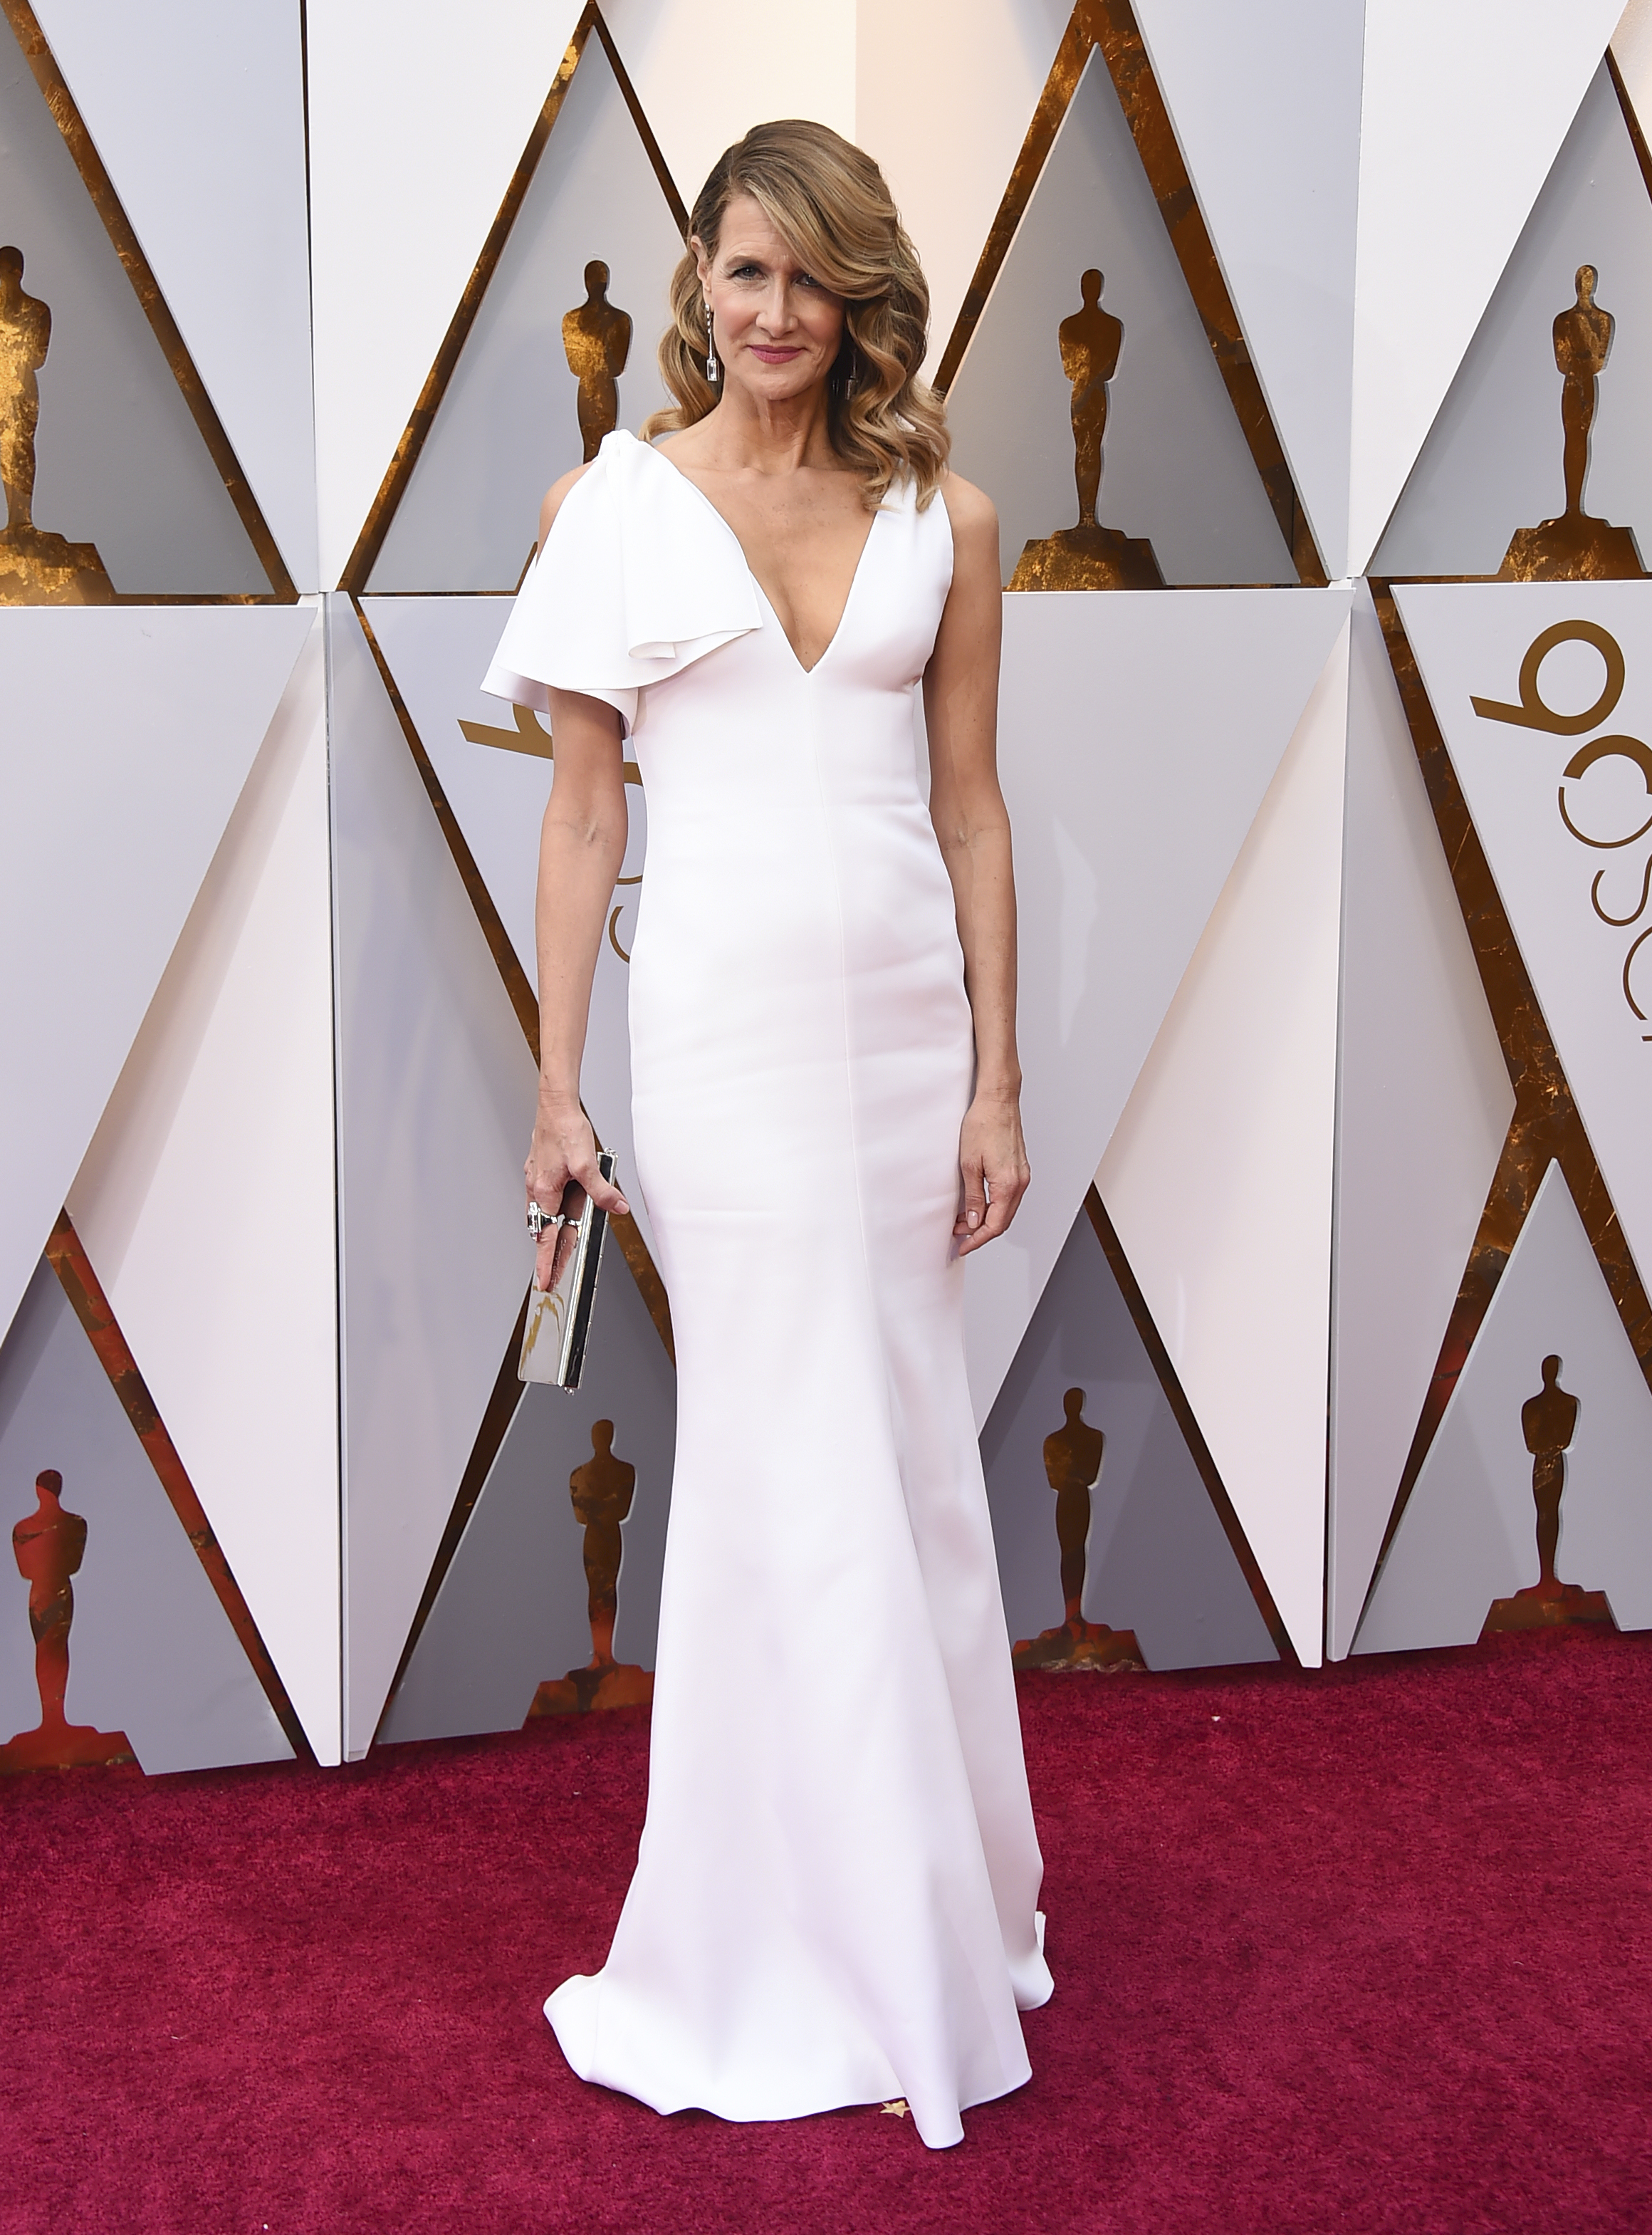 <div class='meta'><div class='origin-logo' data-origin='none'></div><span class='caption-text' data-credit='Jordan Strauss/Invision/AP'>Laura Dern arrives at the Oscars on Sunday, March 4, 2018, at the Dolby Theatre in Los Angeles.</span></div>